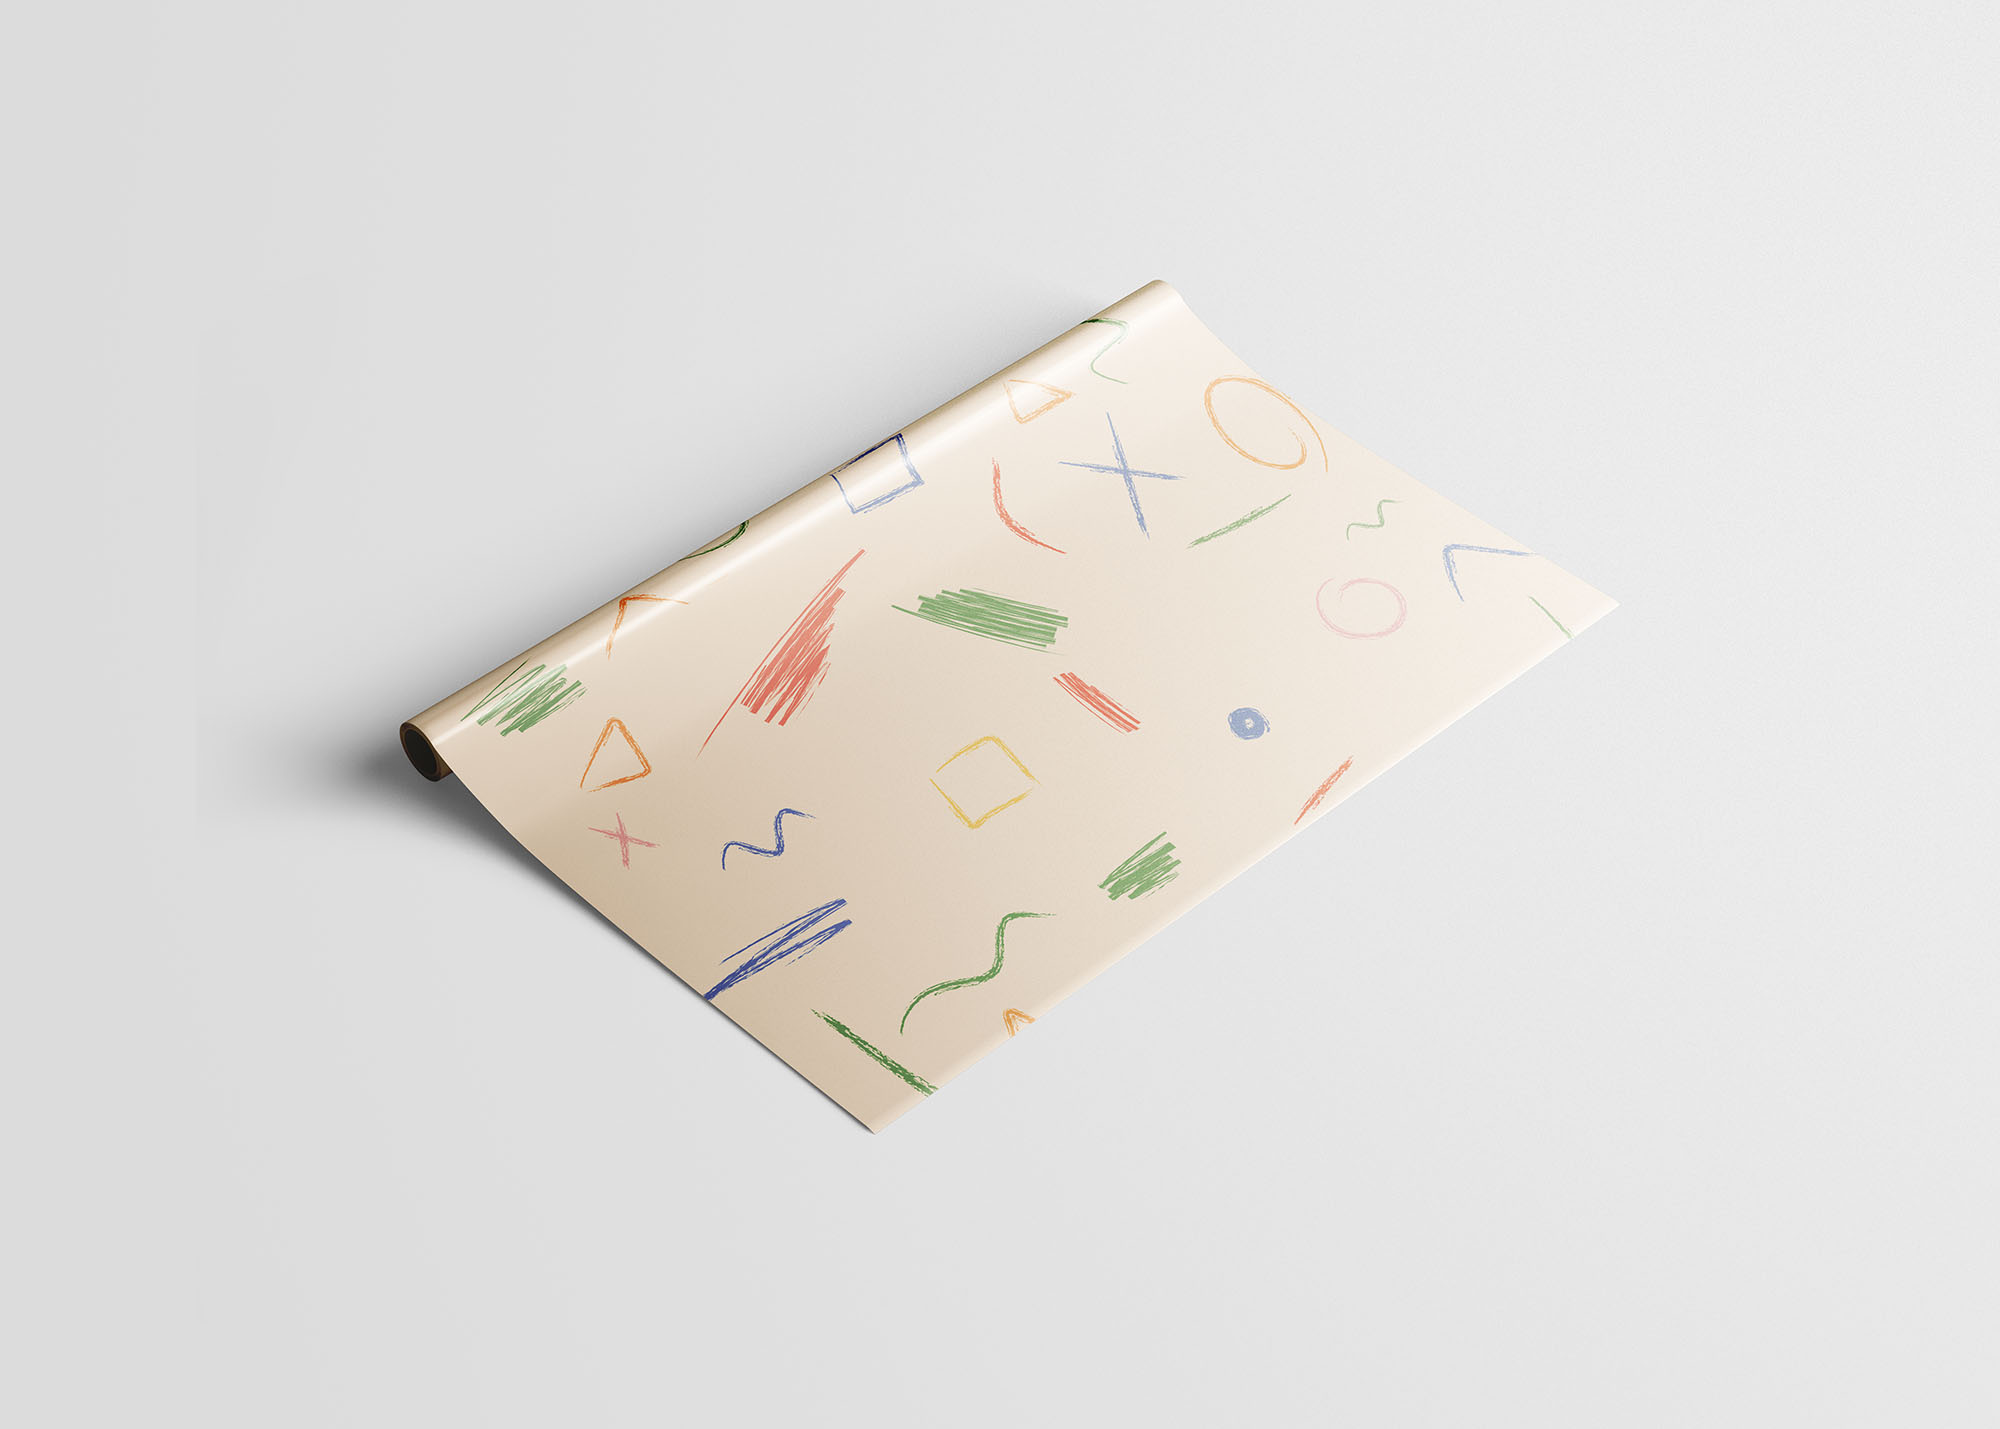 Wrapping Paper Mockup 2